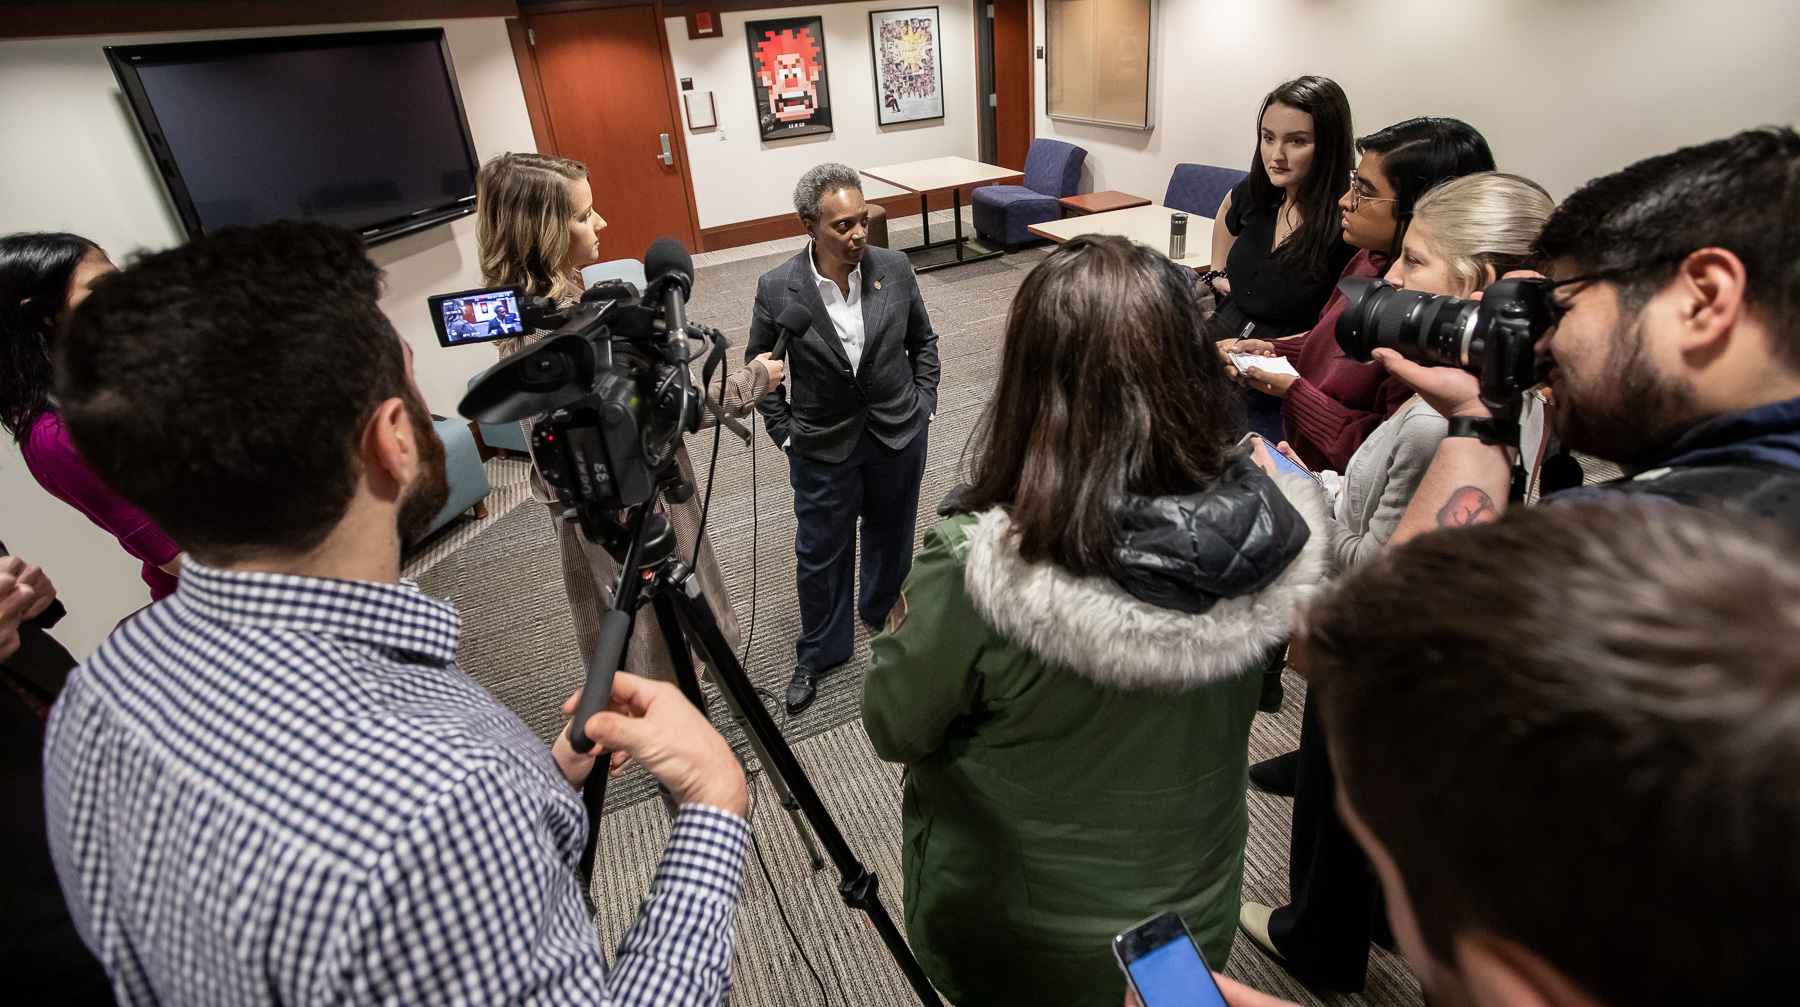 After the candid conversation, Lightfoot was interviewed by journalists from DePaul University student media outlets. (DePaul University/Jeff Carrion)